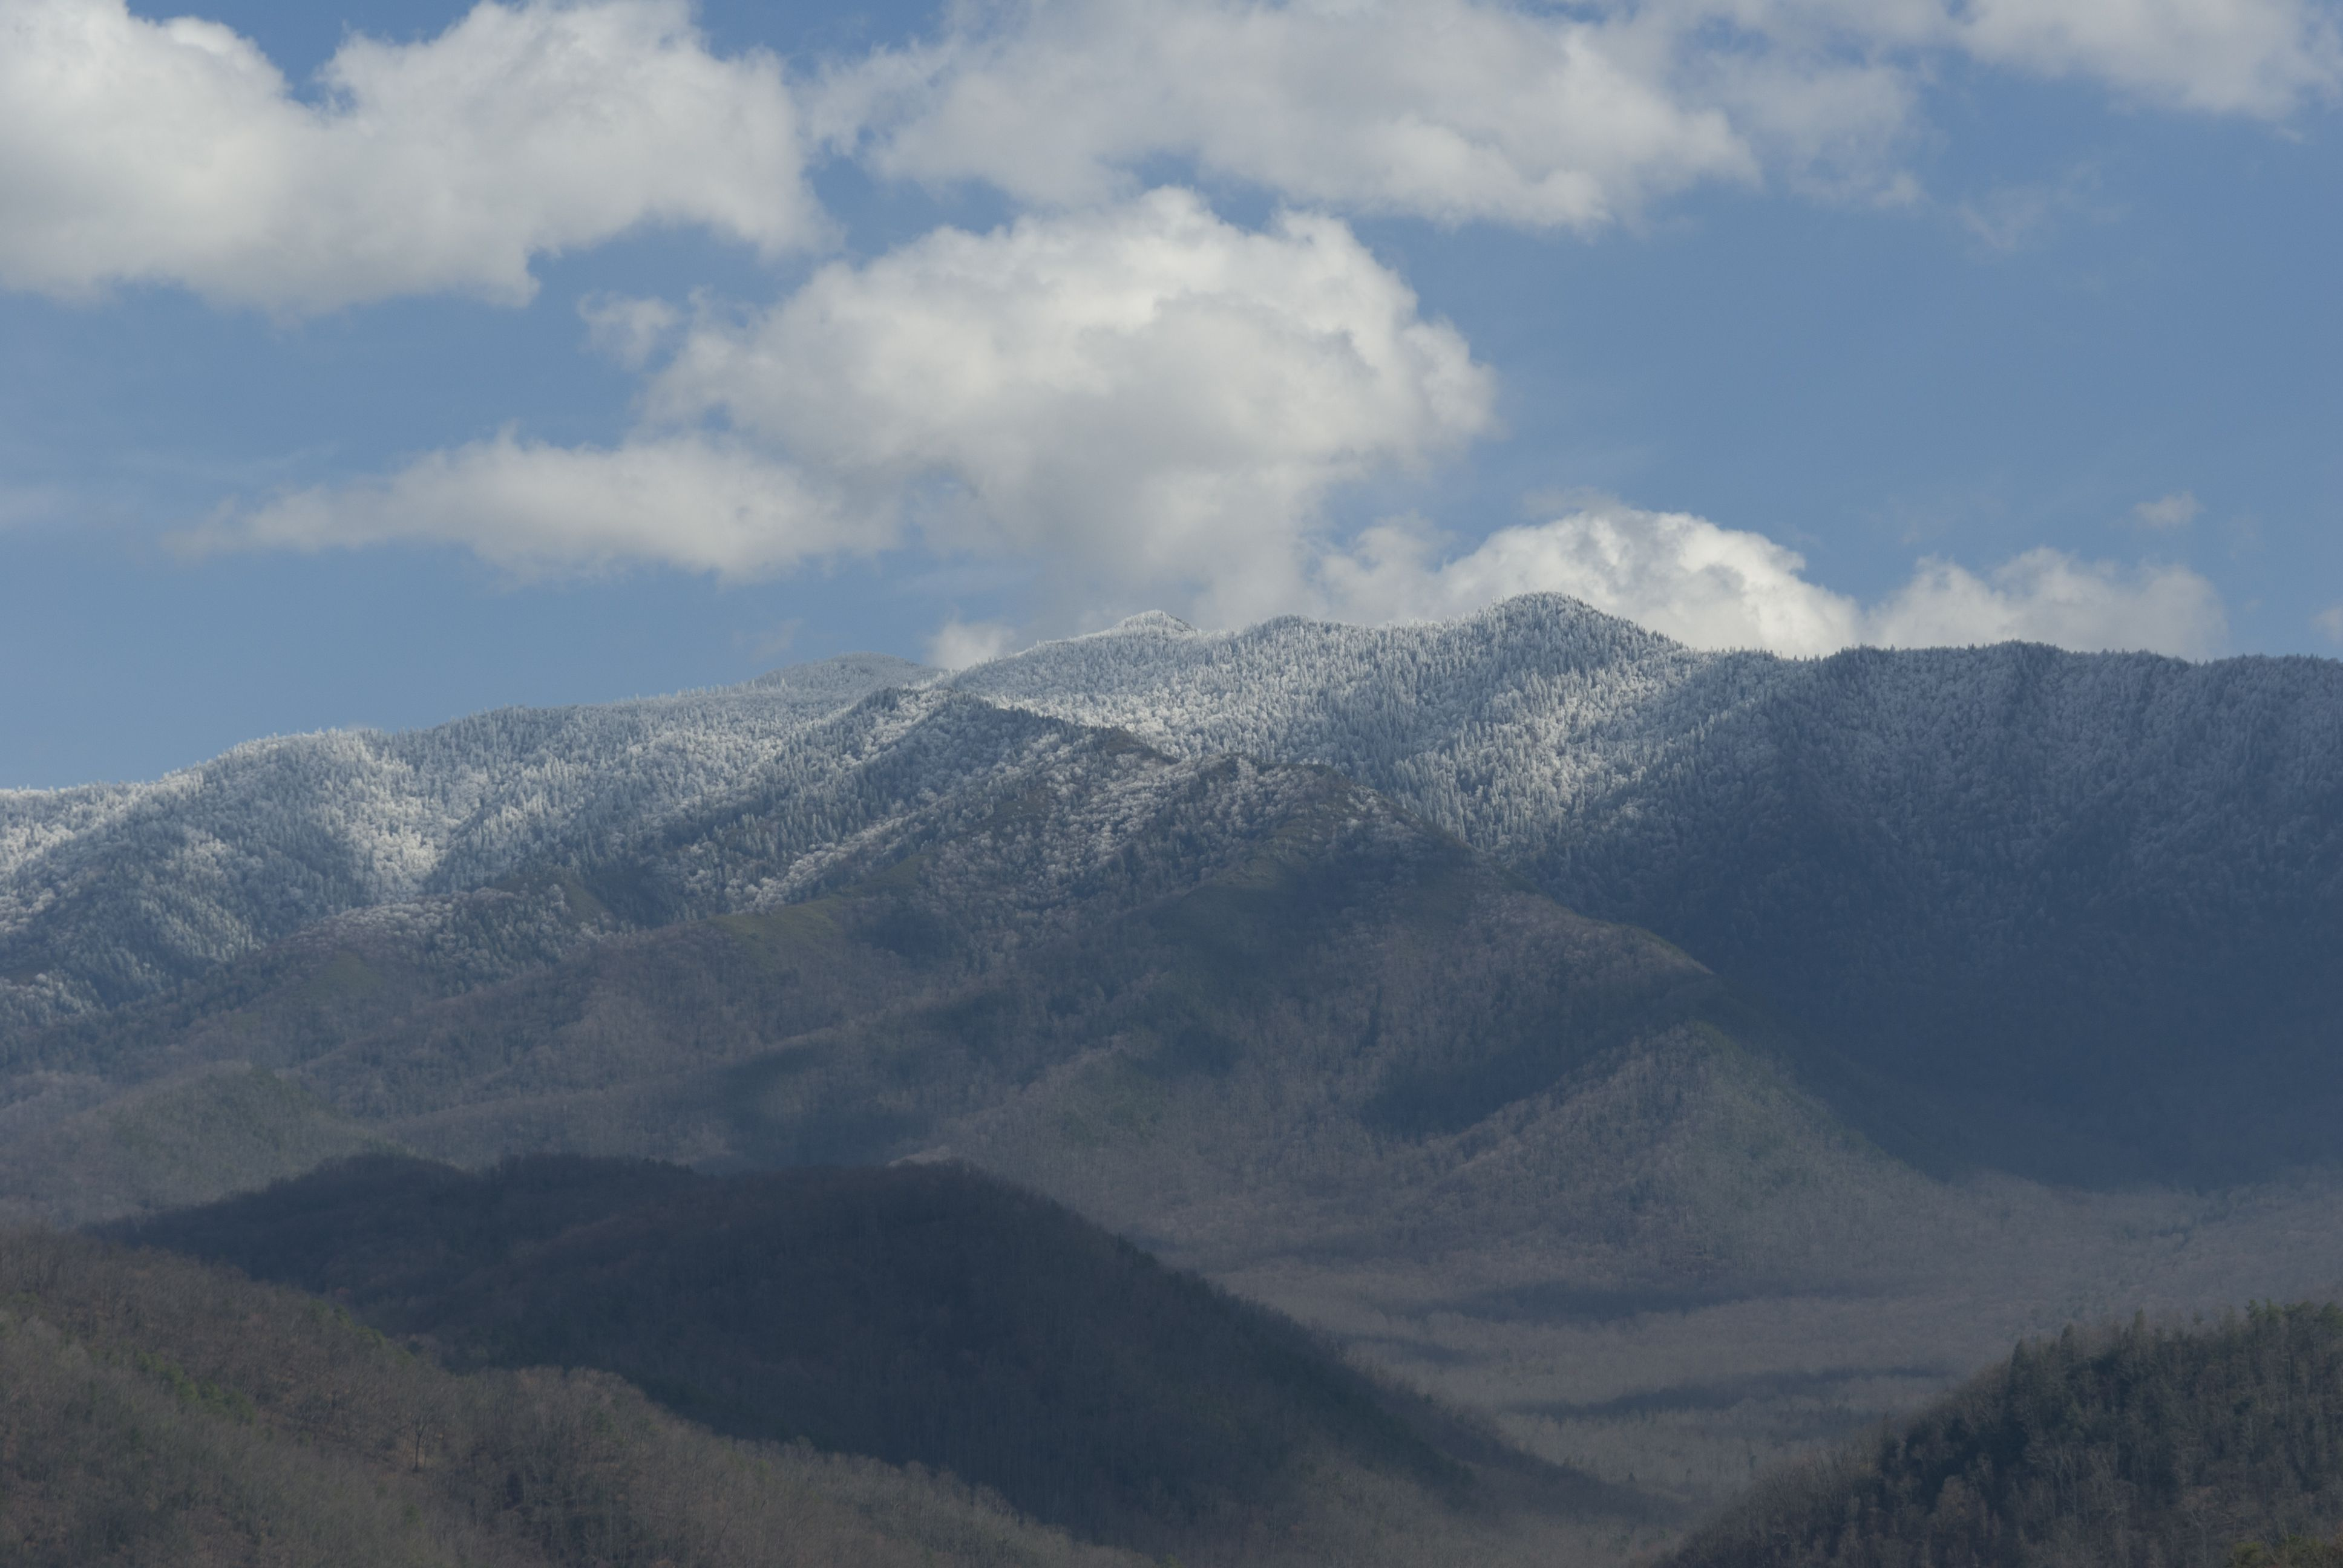 A Breathtaking View Of Mt Leconte Scenes From The Smoky